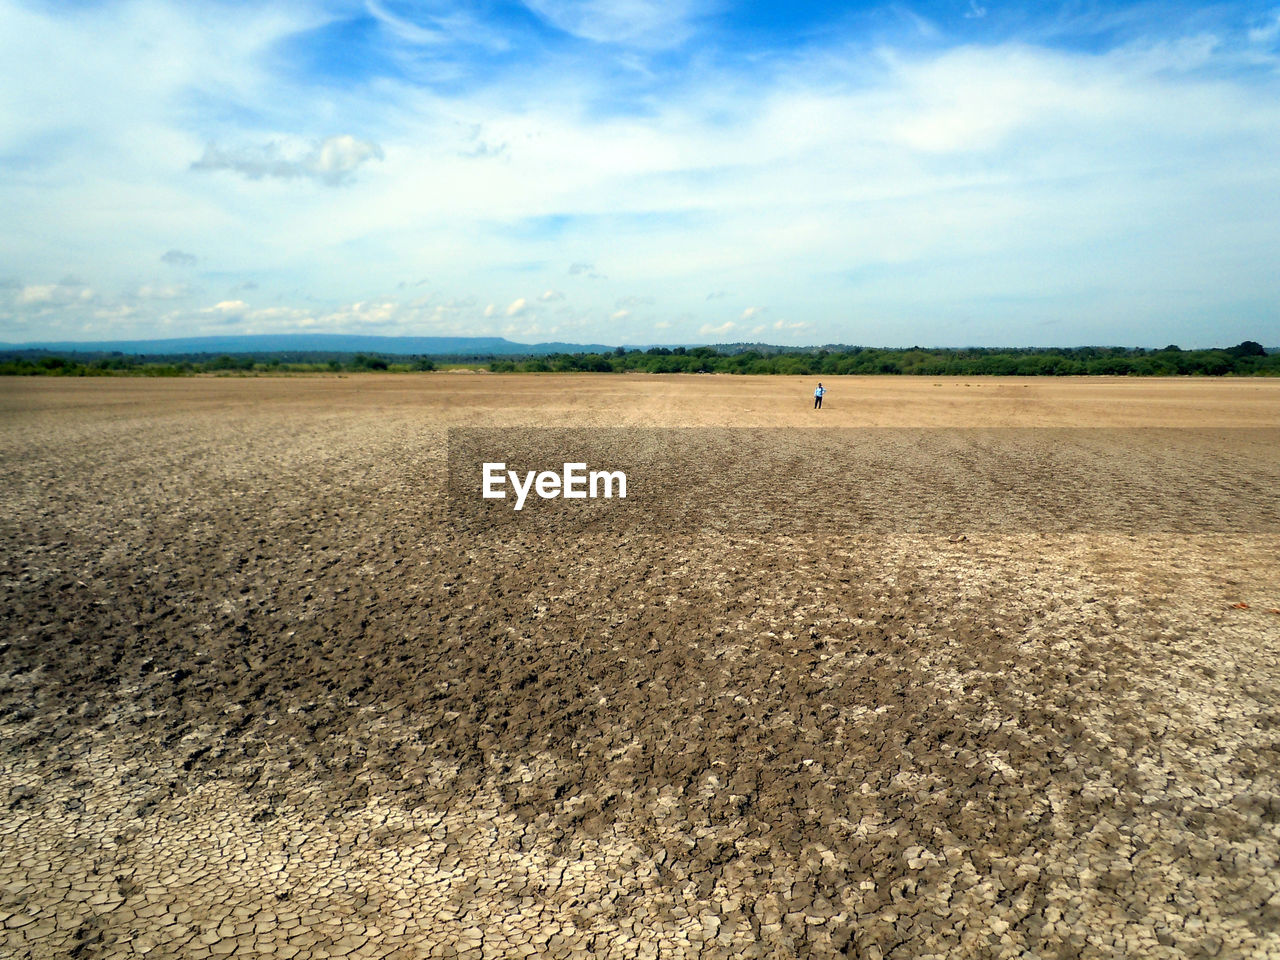 landscape, land, sky, cloud - sky, field, environment, agriculture, scenics - nature, beauty in nature, nature, rural scene, day, tranquil scene, farm, tranquility, horizon, horizon over land, plant, plough, agricultural machinery, outdoors